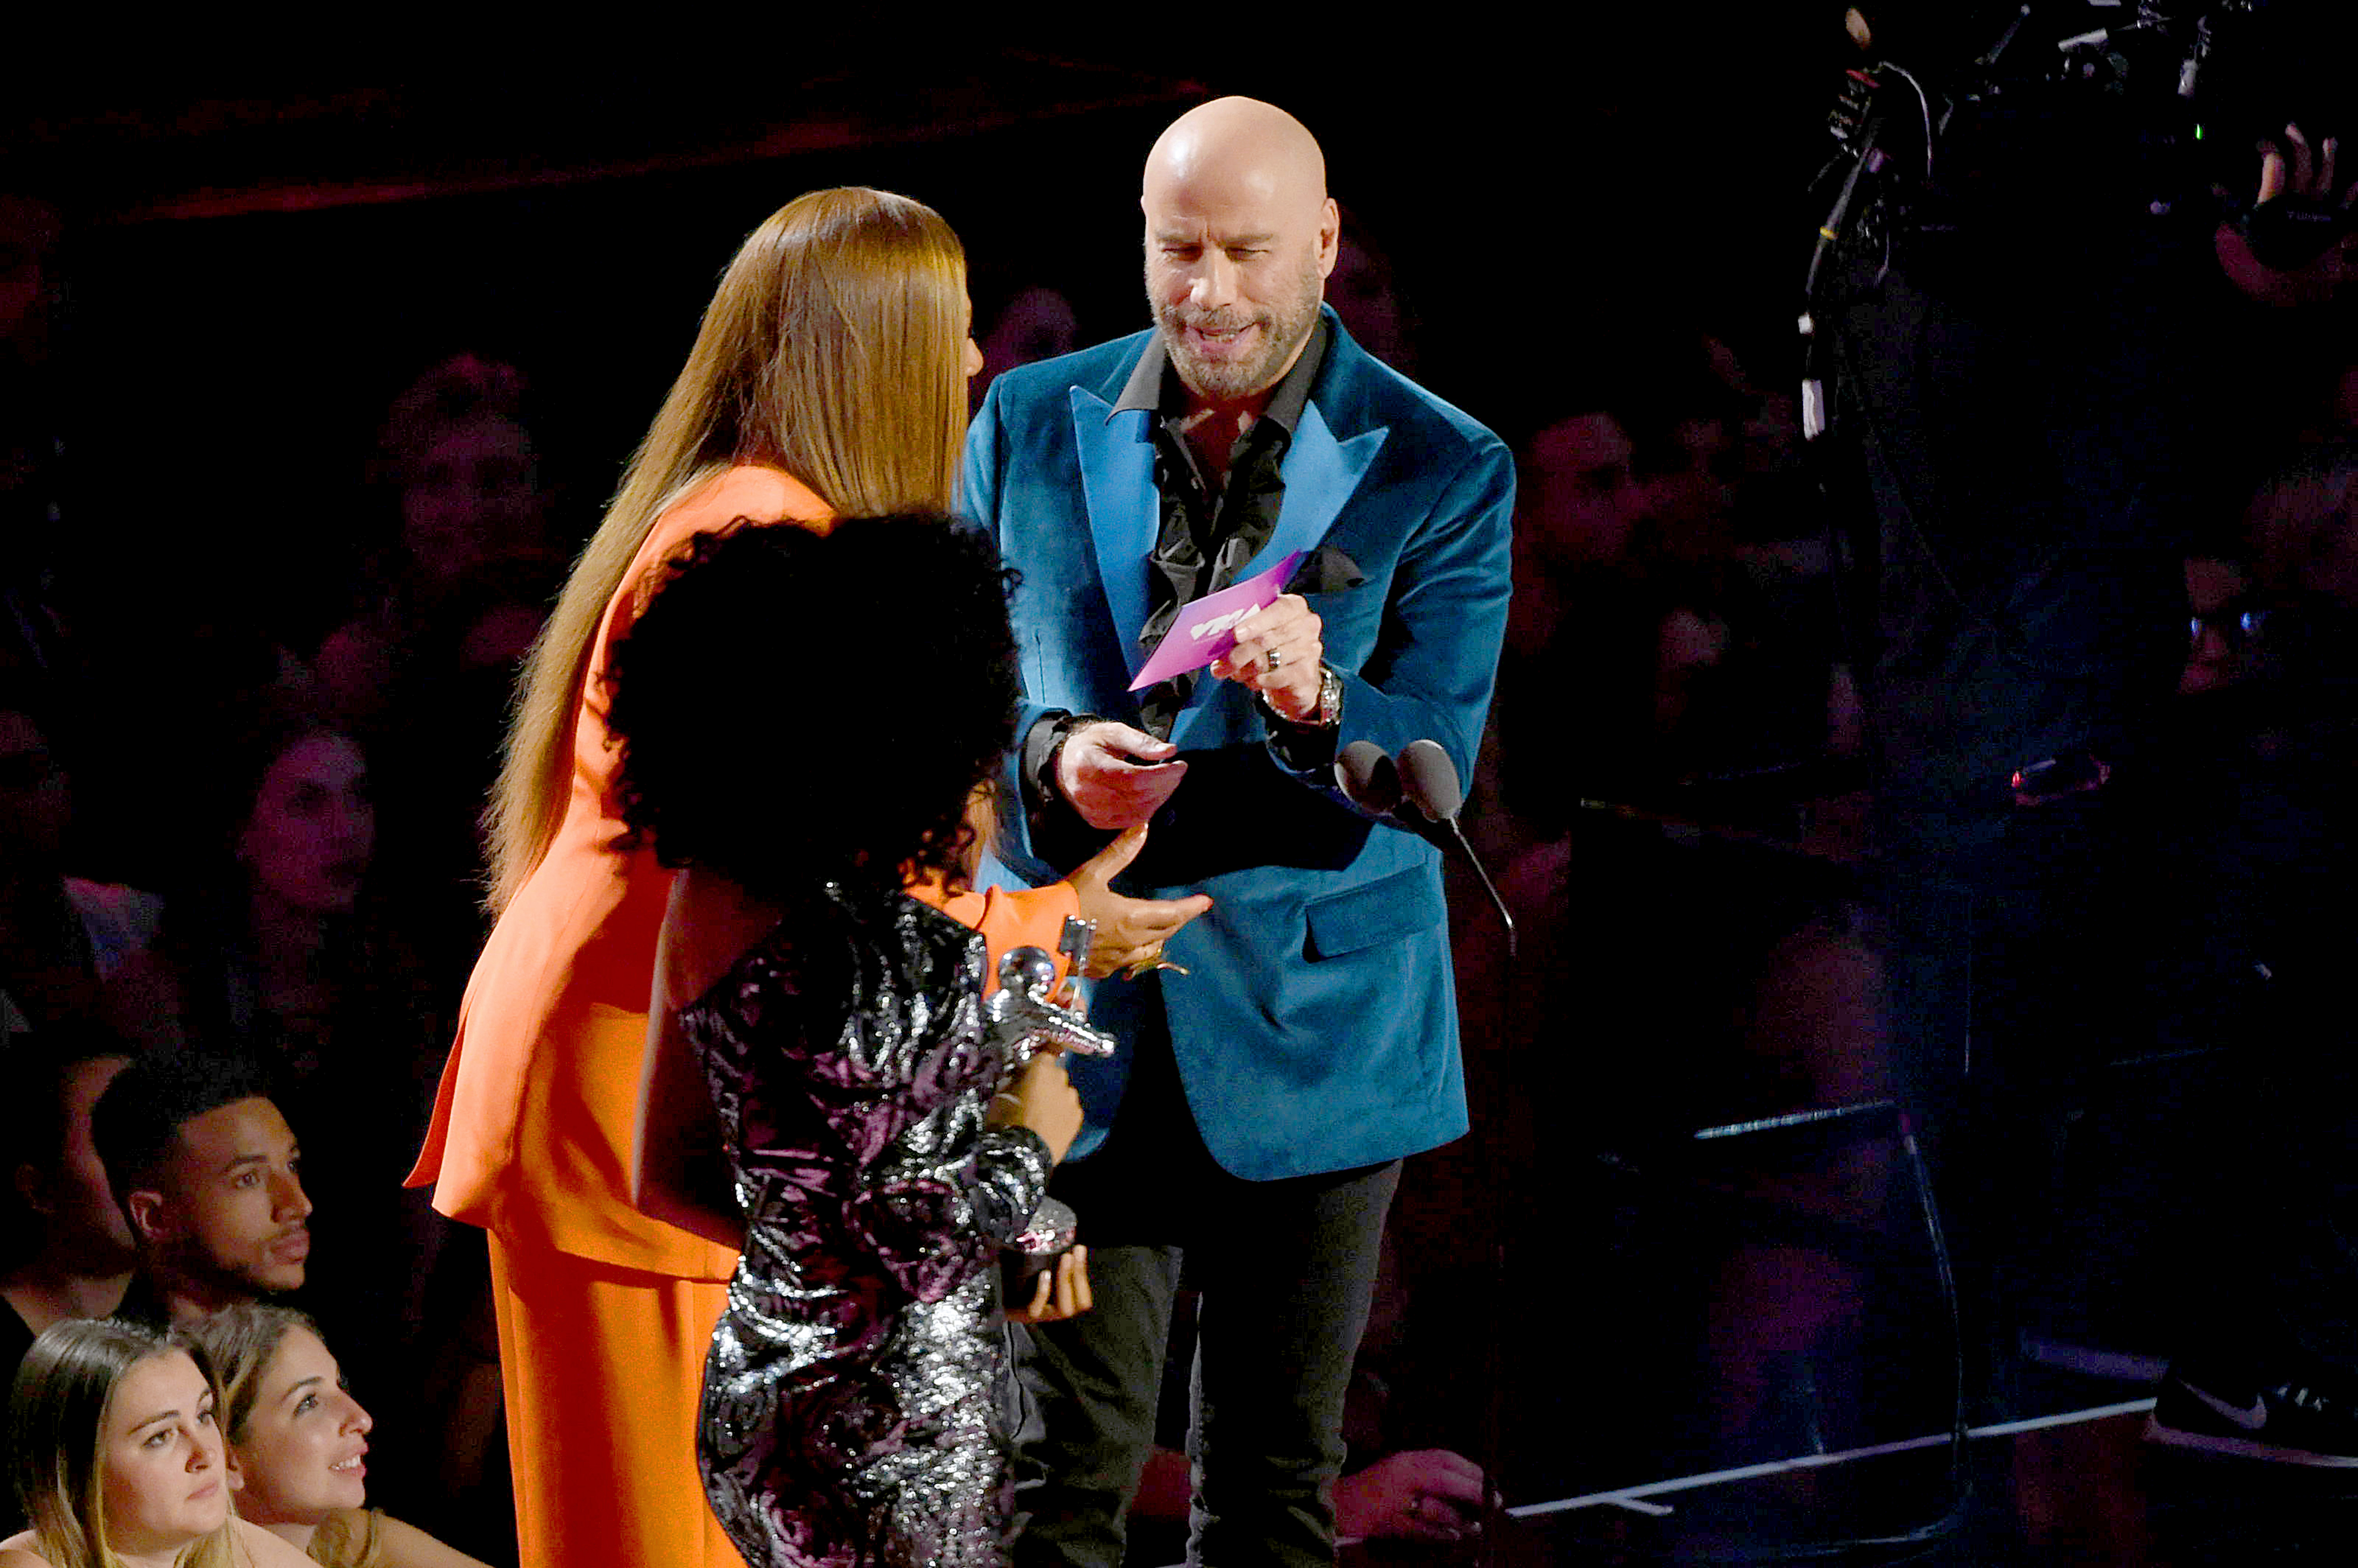 NEWARK, NEW JERSEY - AUGUST 26: Queen Latifah and John Travolta speak onstage during the 2019 MTV Video Music Awards at Prudential Center on August 26, 2019 in Newark, New Jersey. (Photo by Bryan Bedder/Getty Images,)